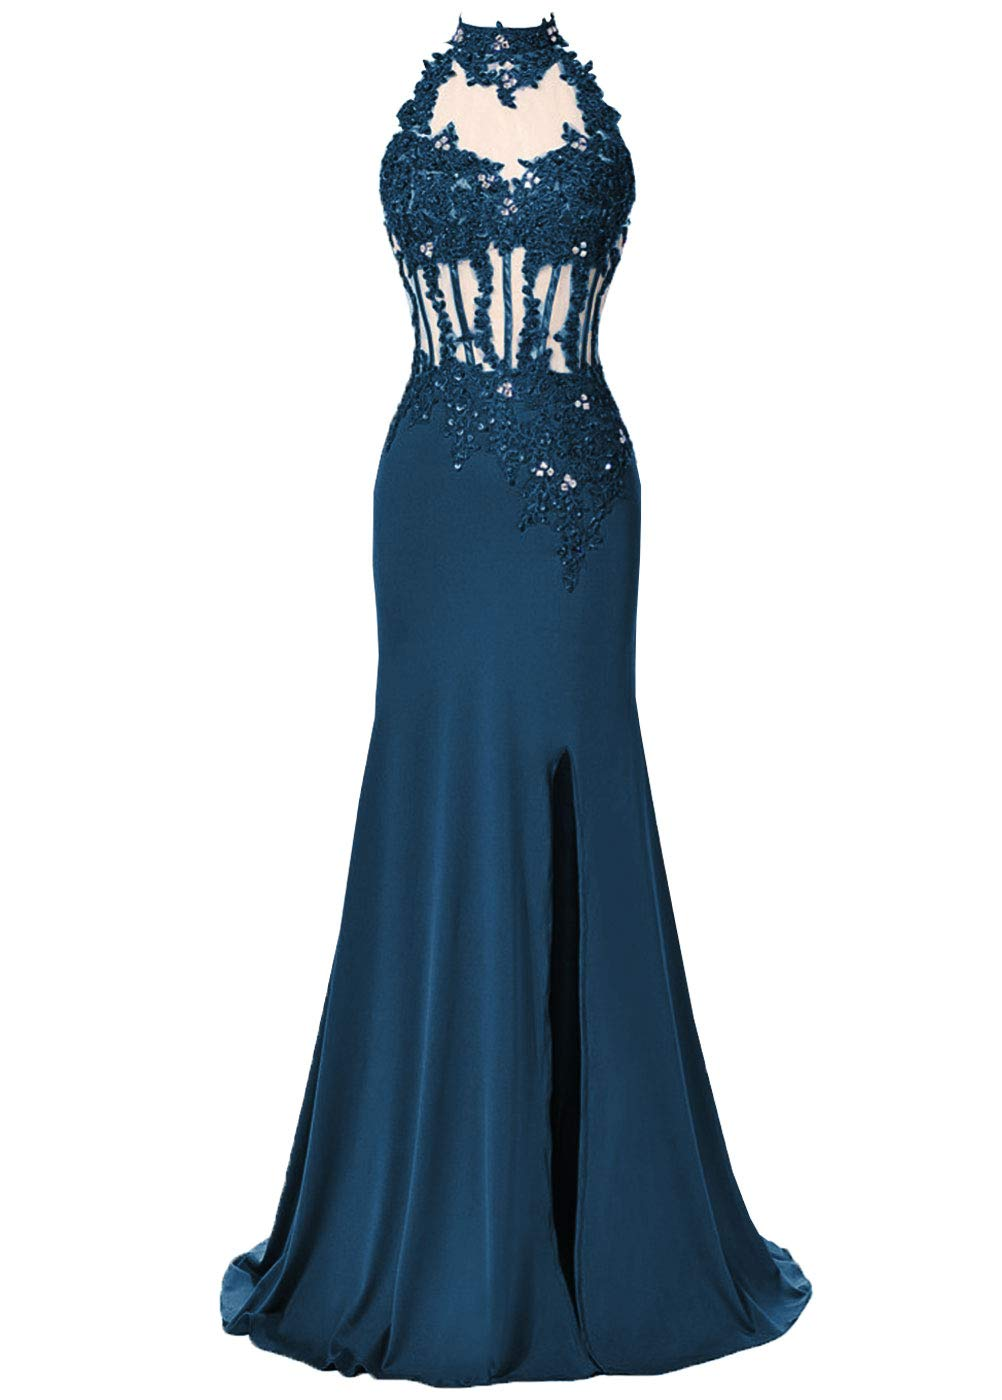 Dys Womens Mermaid Prom Dress High Neck Lace Appliques Nude Tulle Hole Back Teal Us 4-6739